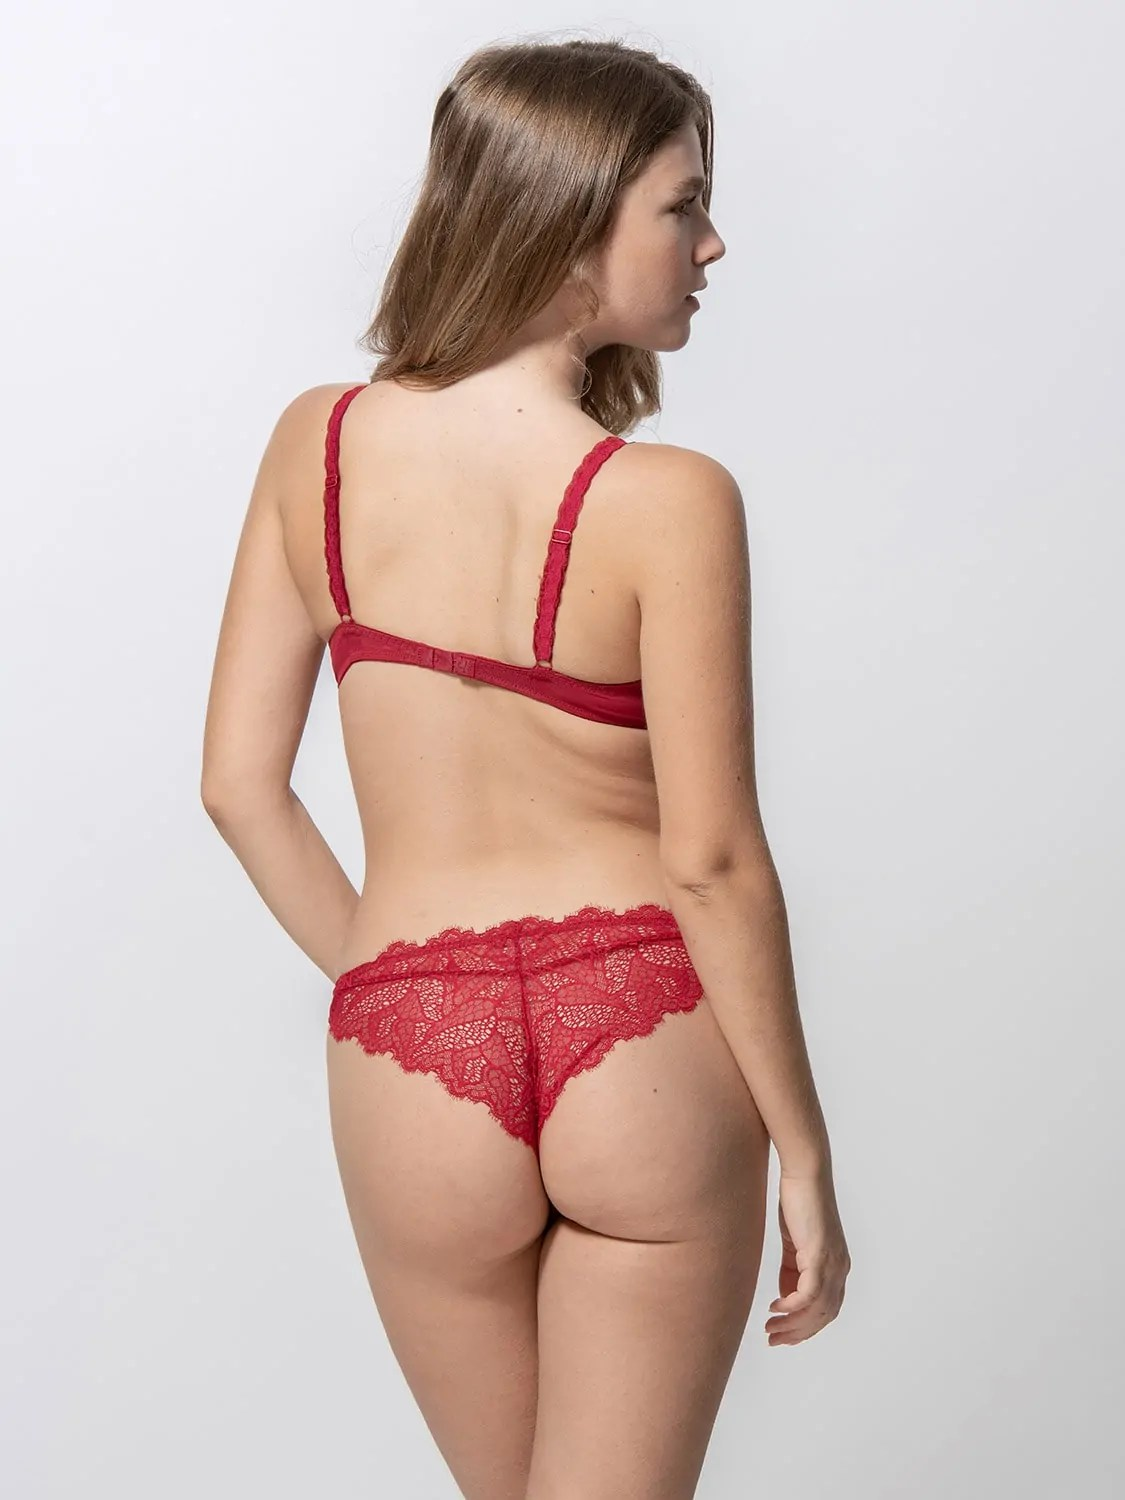 Orchidea 14090 super push-up & 24090 brazilian brief red back